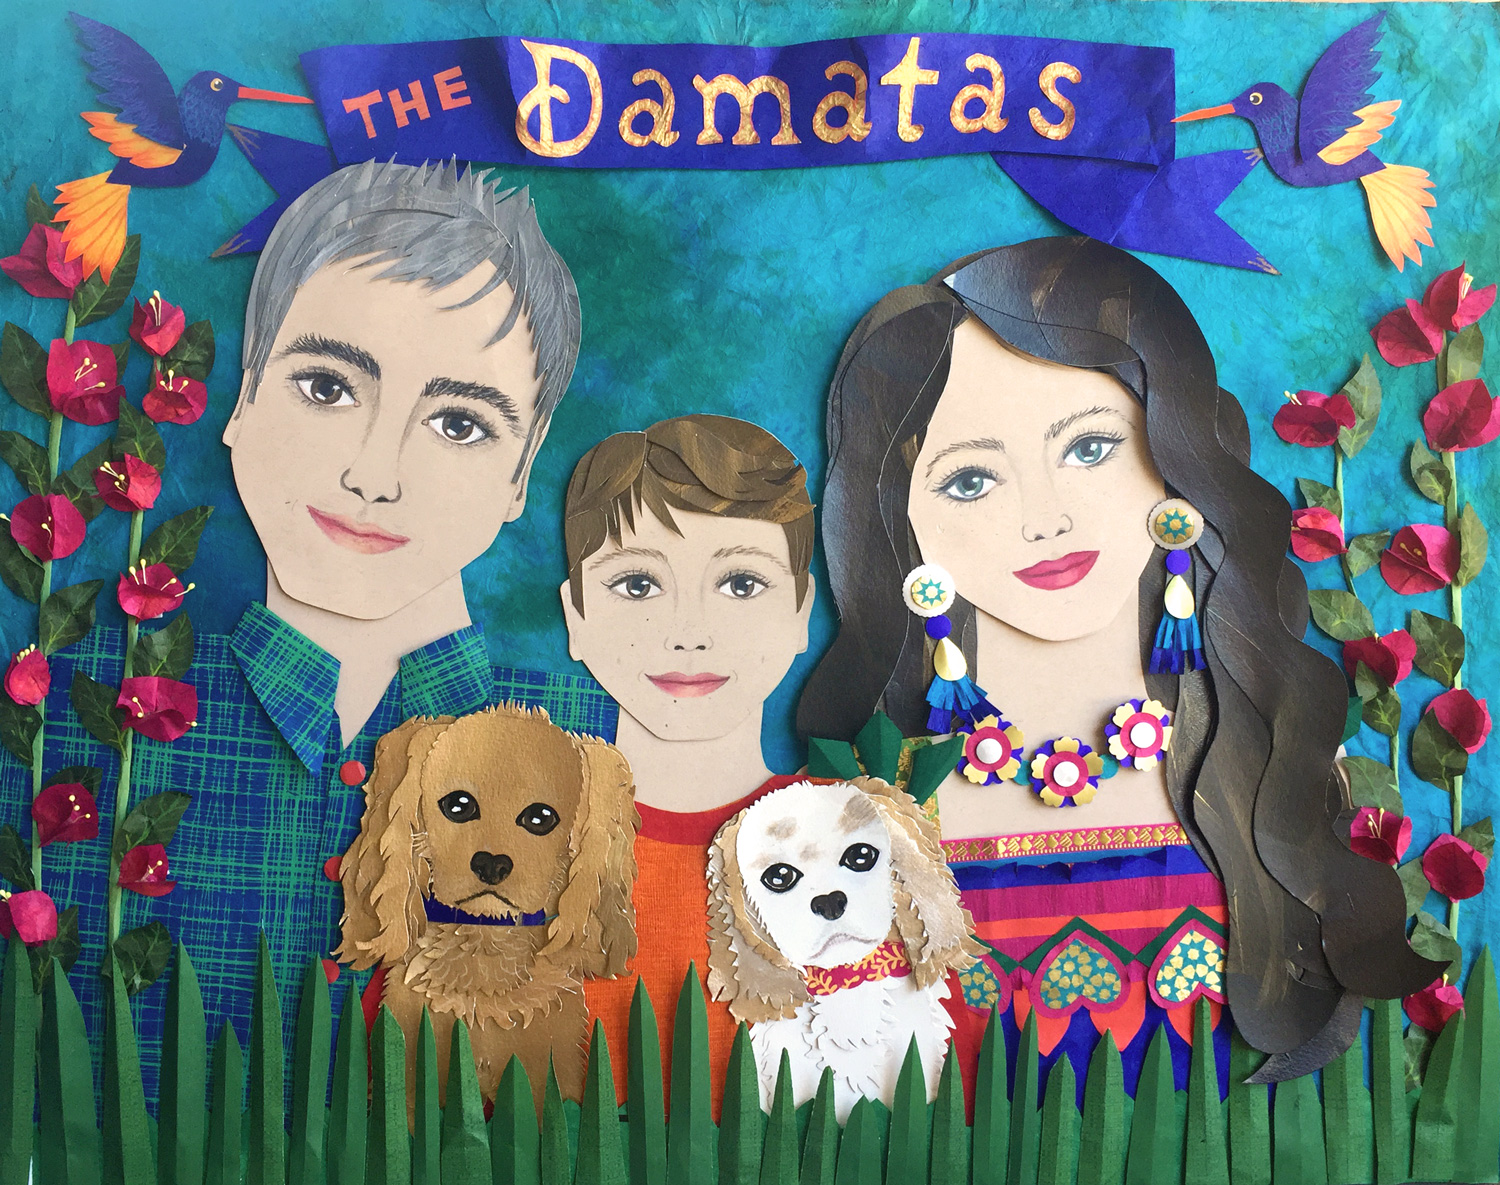 The Damatas, by Heidi Damata